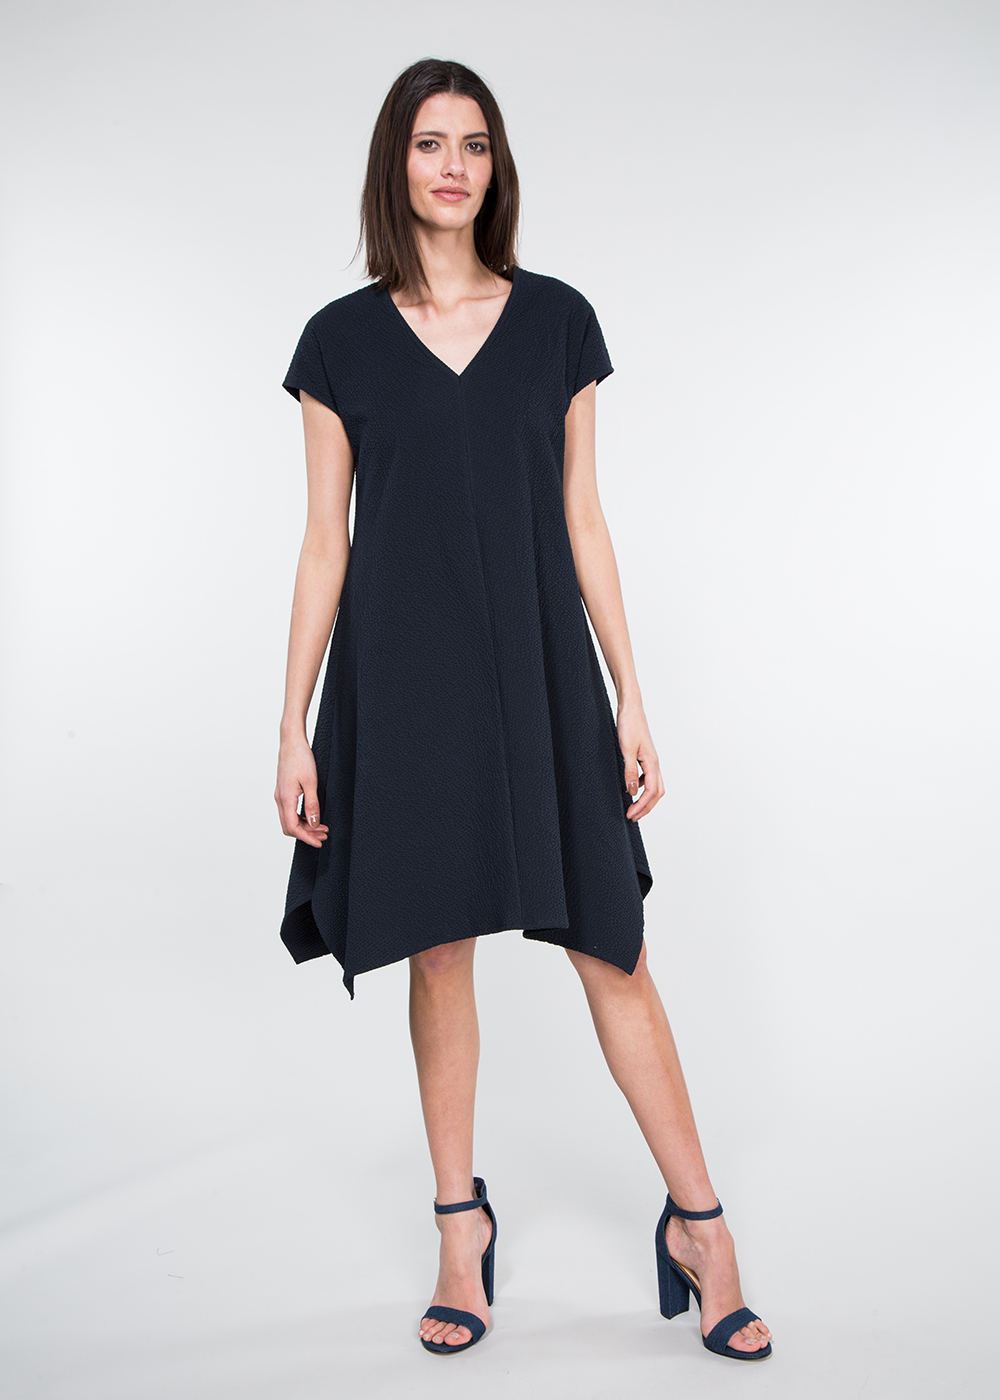 Westwood Dress in Italian Black Cotton Seersucker  $895